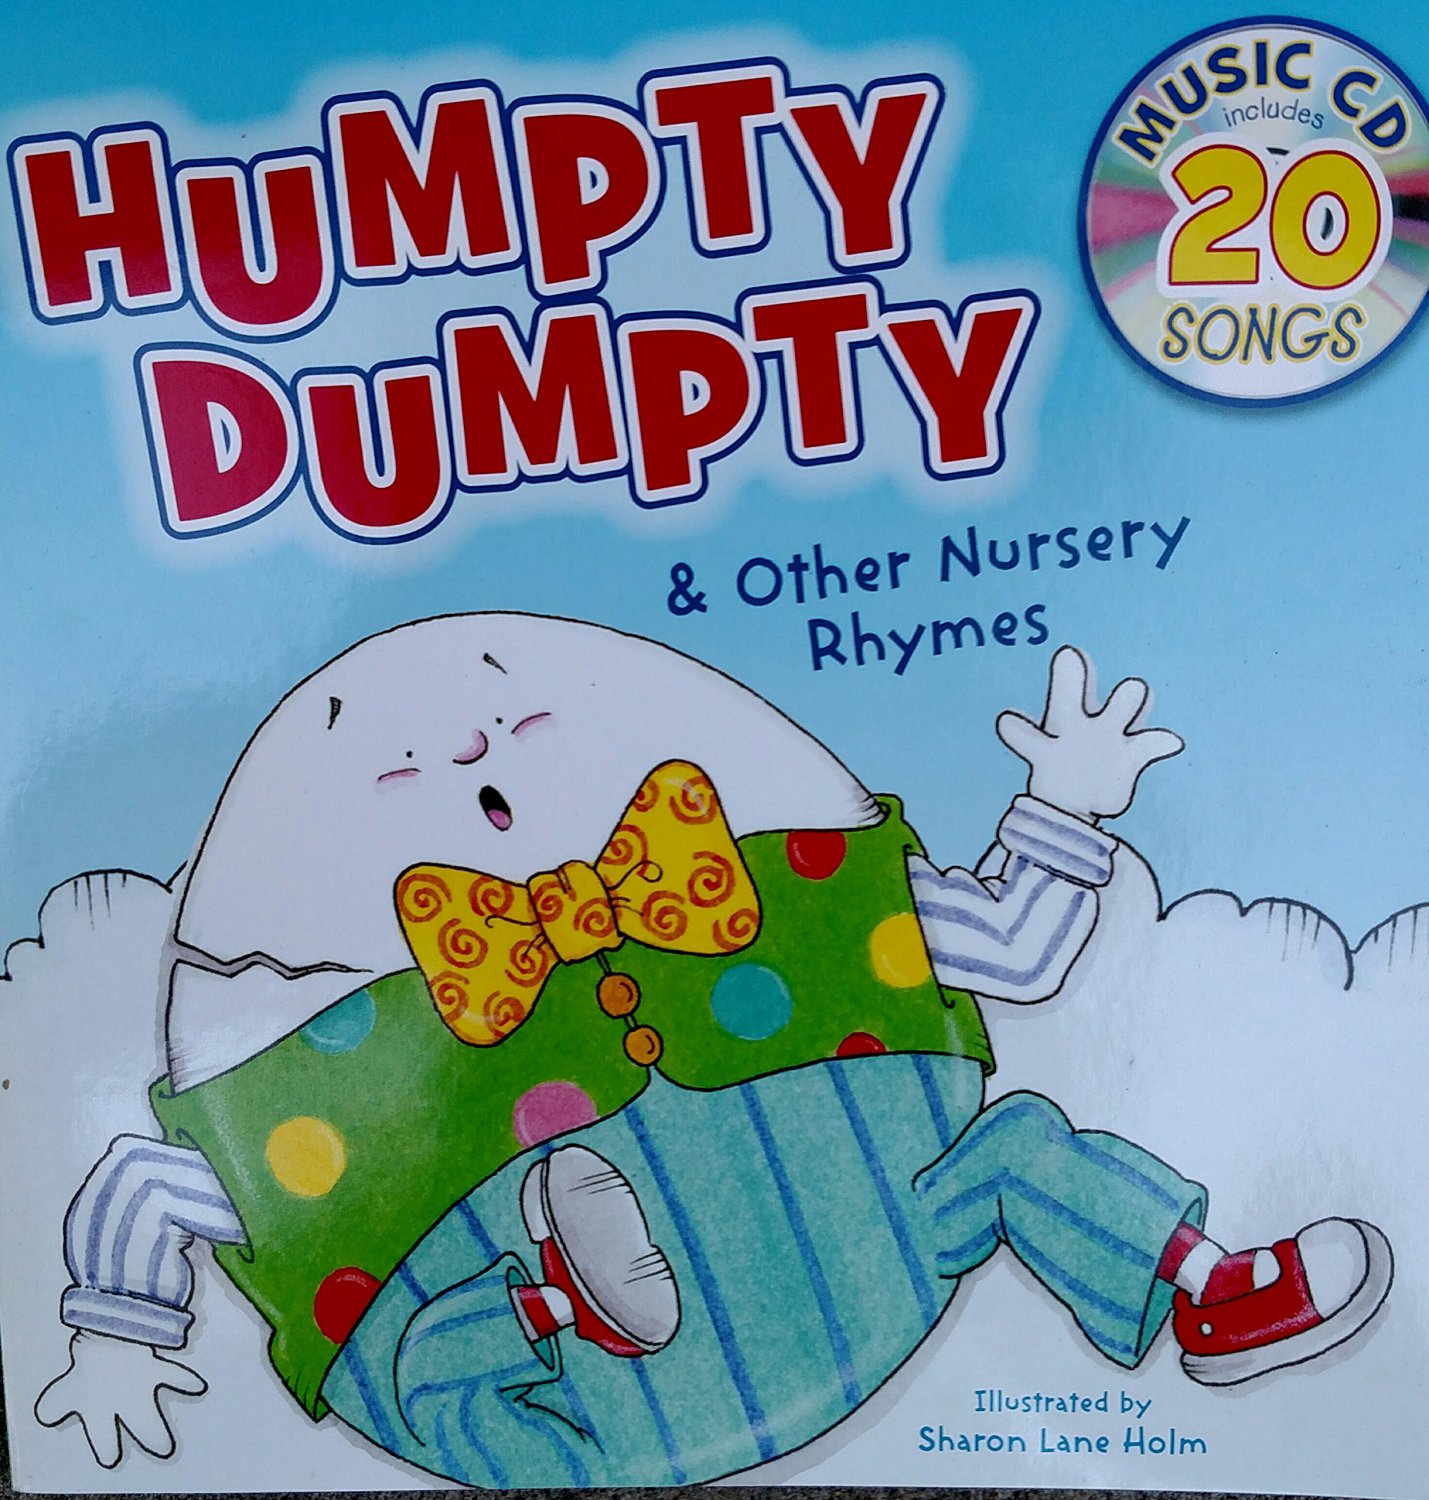 Humpty Dumpty & Other Nursery Rhymes with 20 Songs Music CD  . Book .